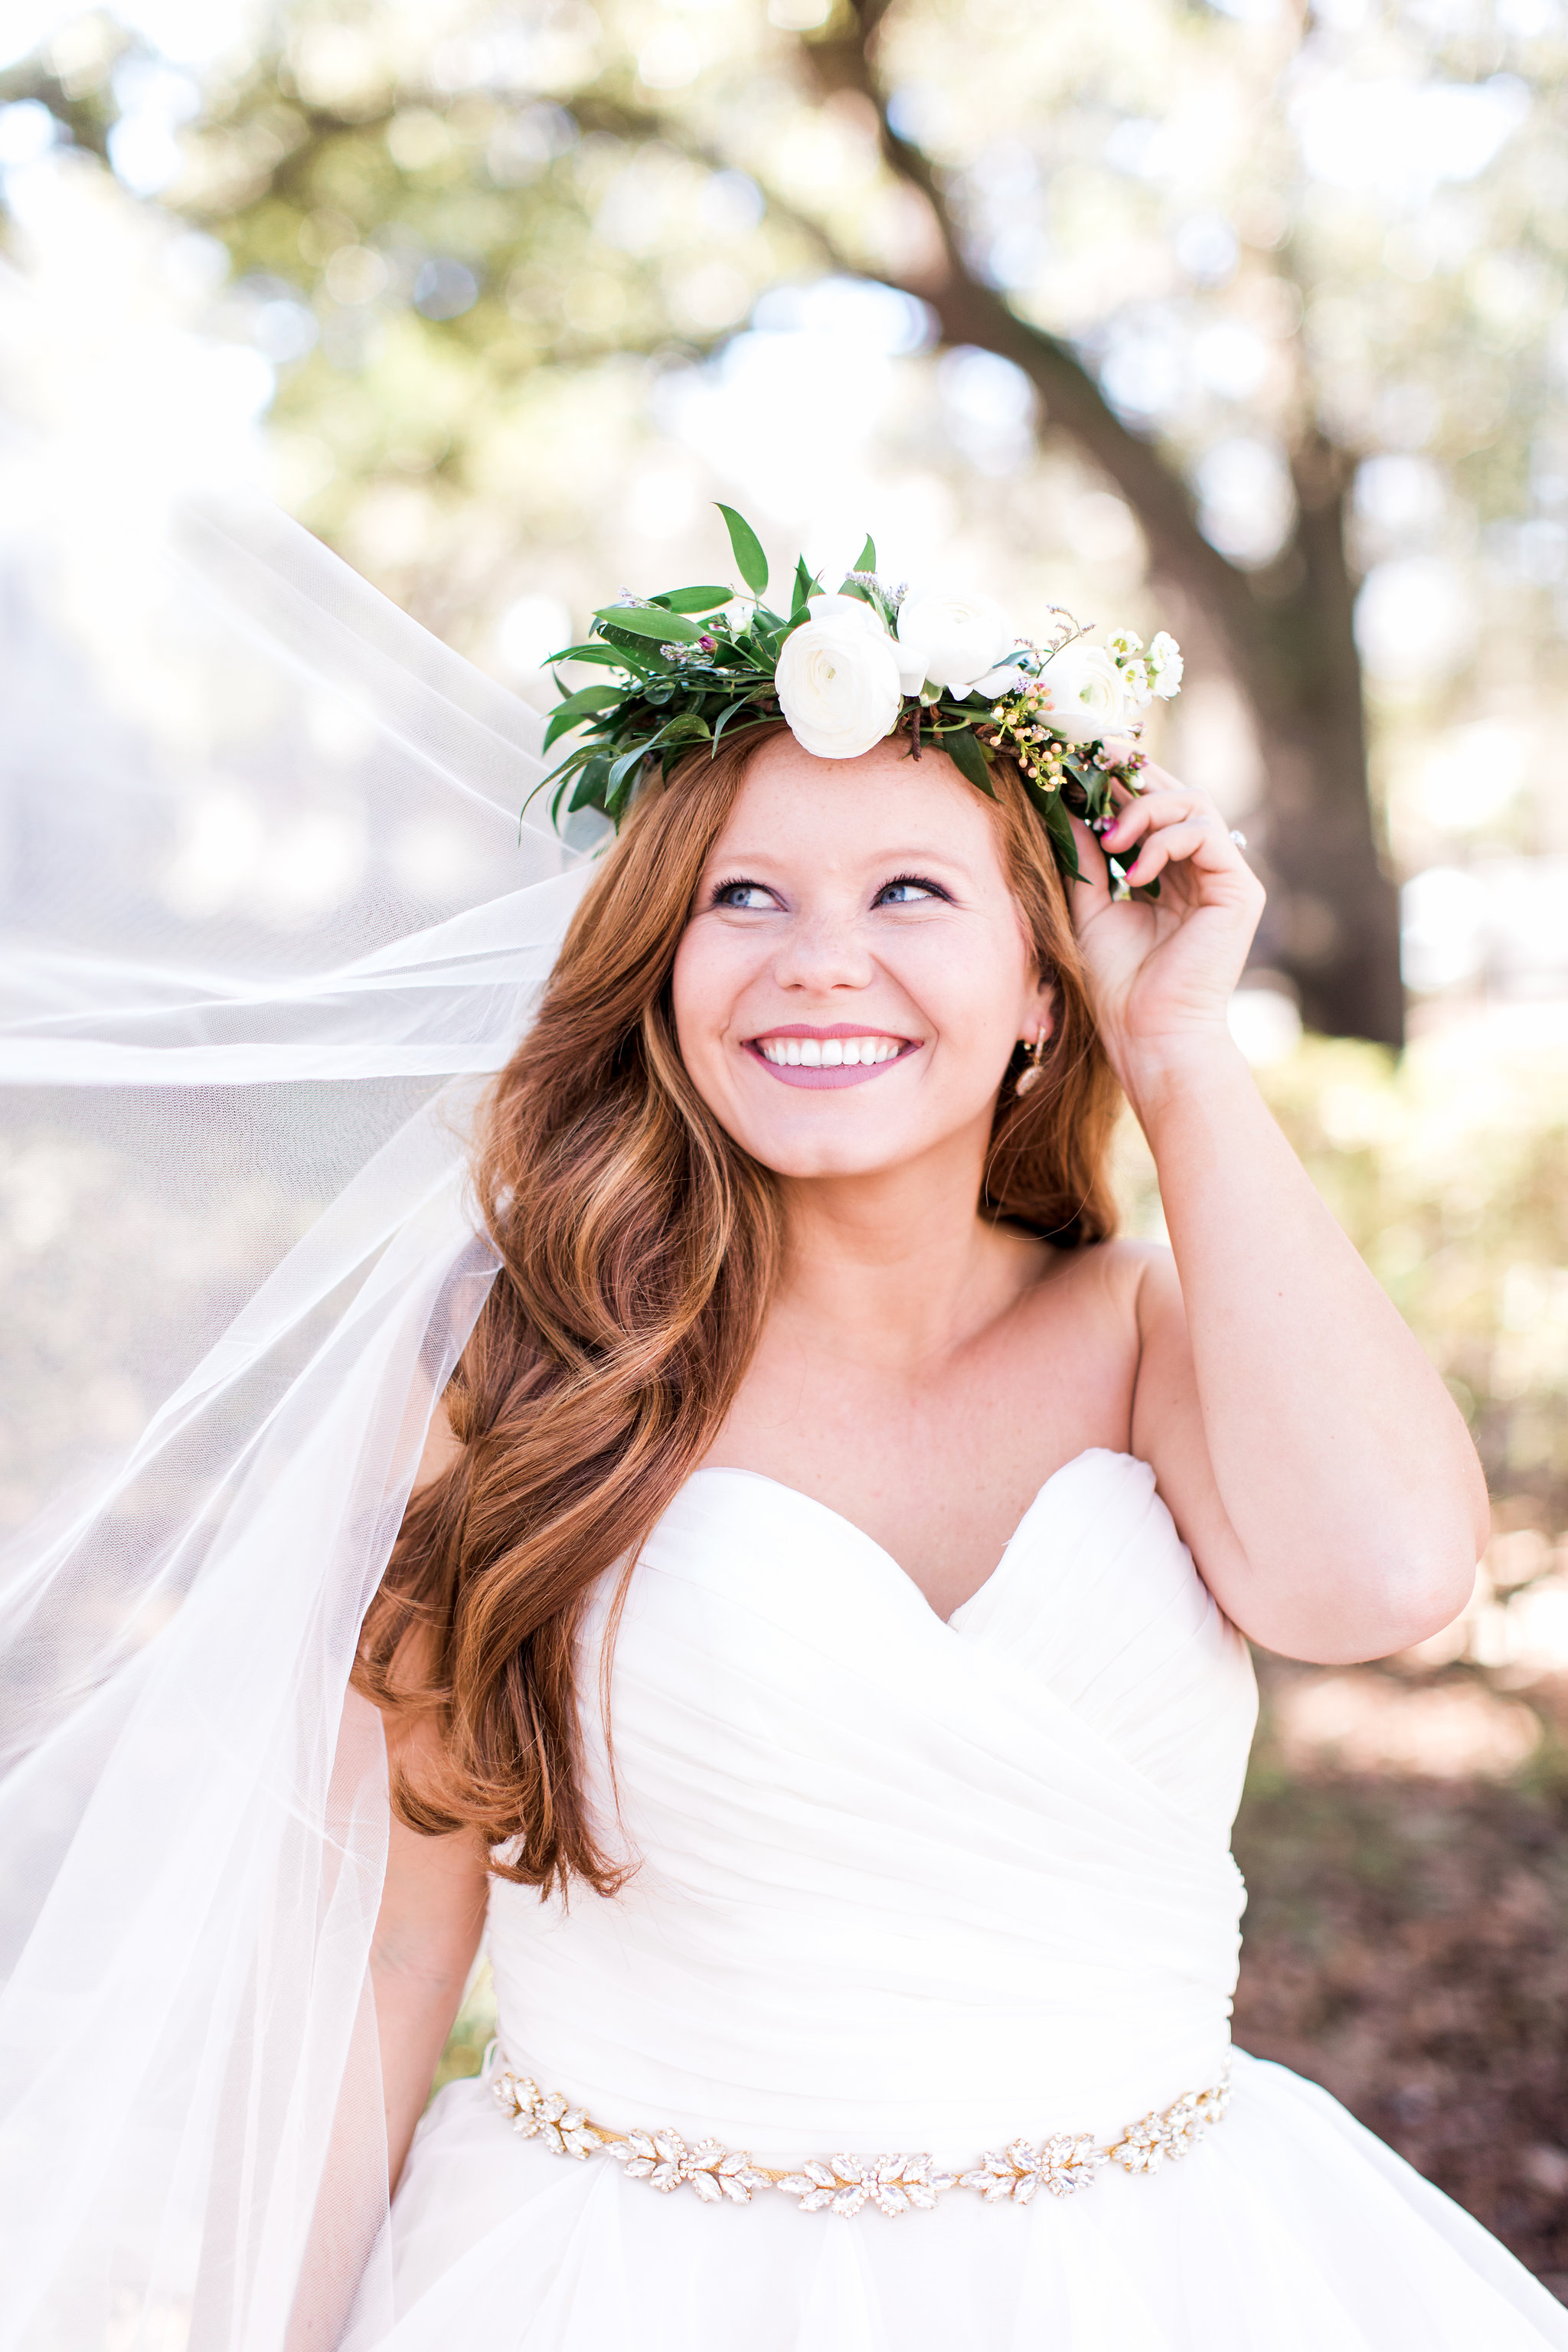 apt-b-photography-mary-elizabeths-bridal-boutique-adele-amelia-accessories-morilee-5504-savannah-bridal-boutique-savannah-weddings-savannah-wedding-photographer-savannah-bridal-gowns-savannah-wedding-dresses-historic-savannah-wedding-18.jpg